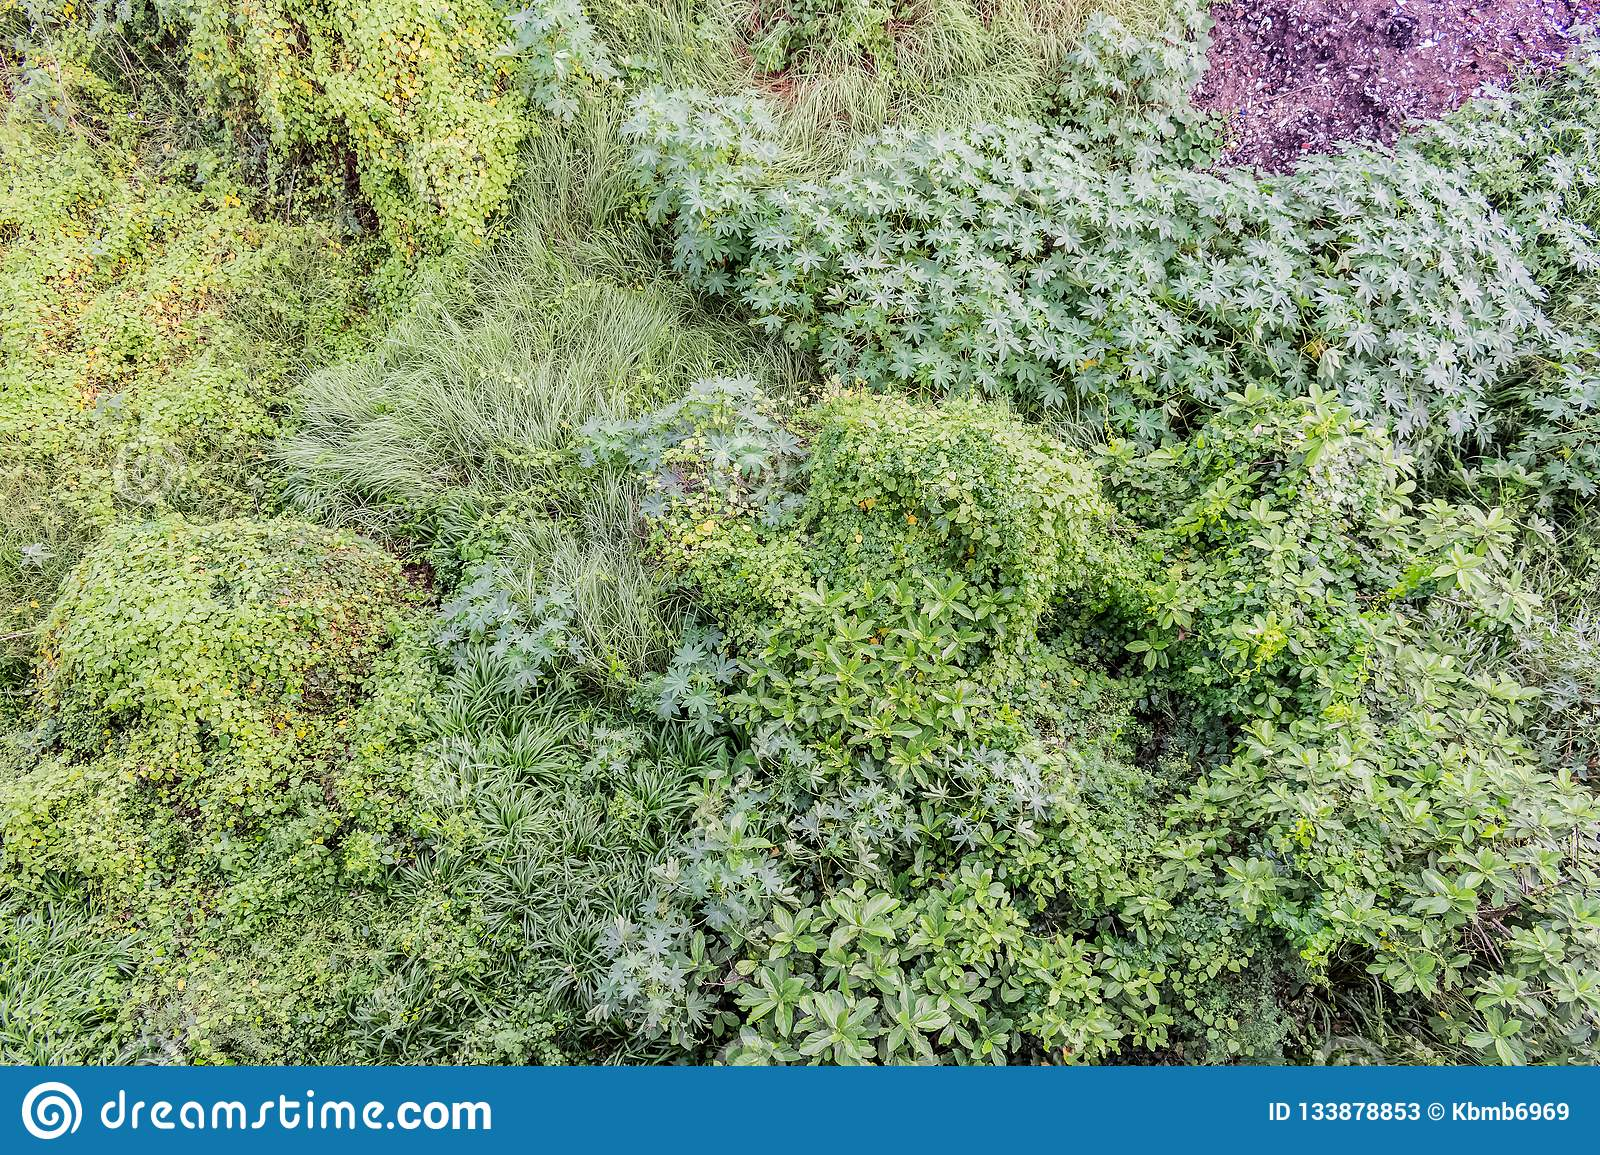 Various Types Of Shrubs Bushes Close View With Greenery Leaves